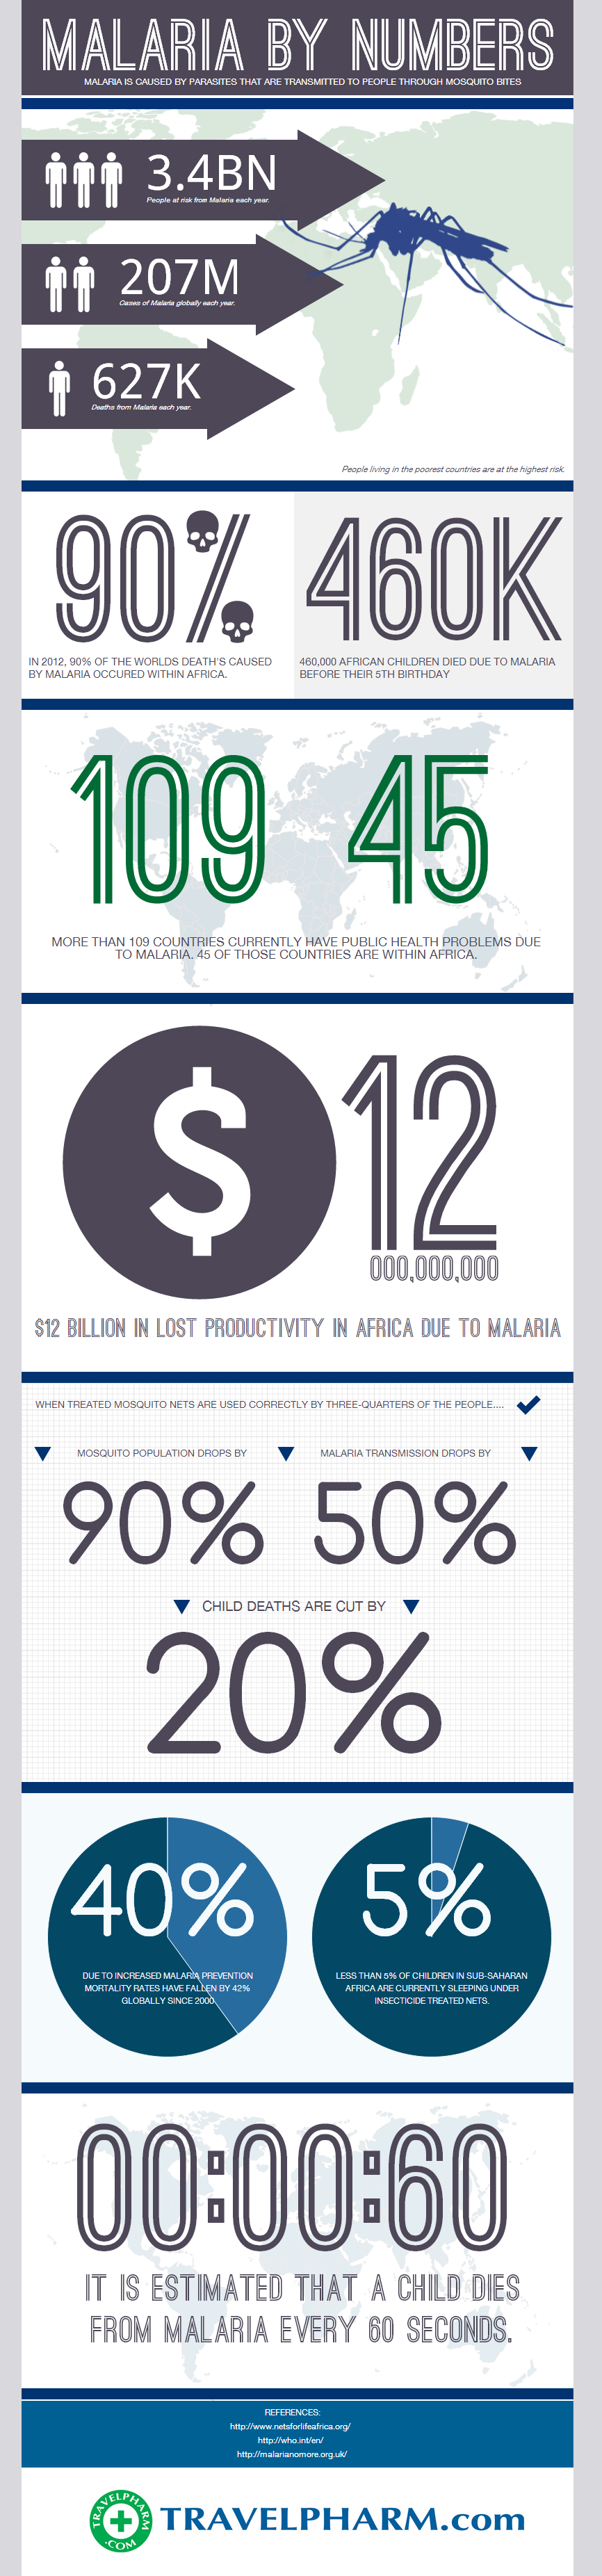 Infographic: Malaria By Numbers